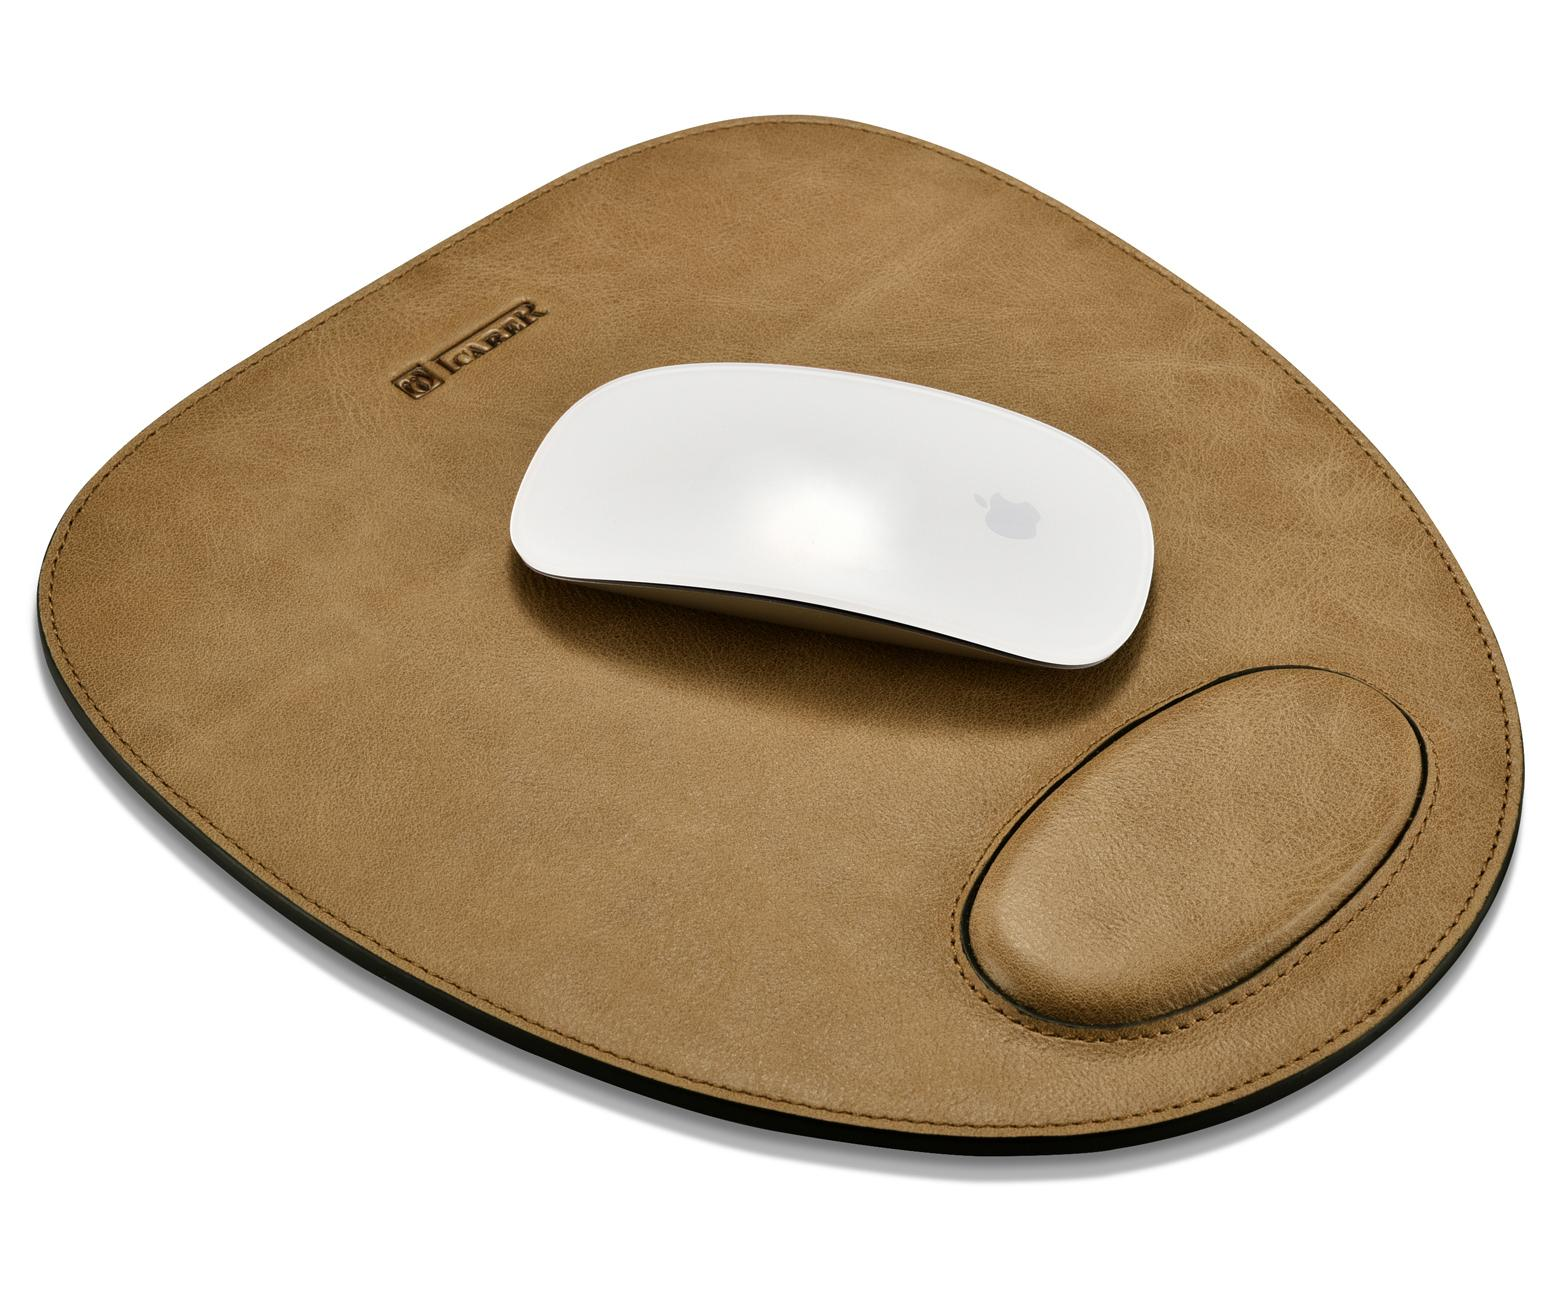 iCarer Shenzhou Real Leather Mouse Pad 1